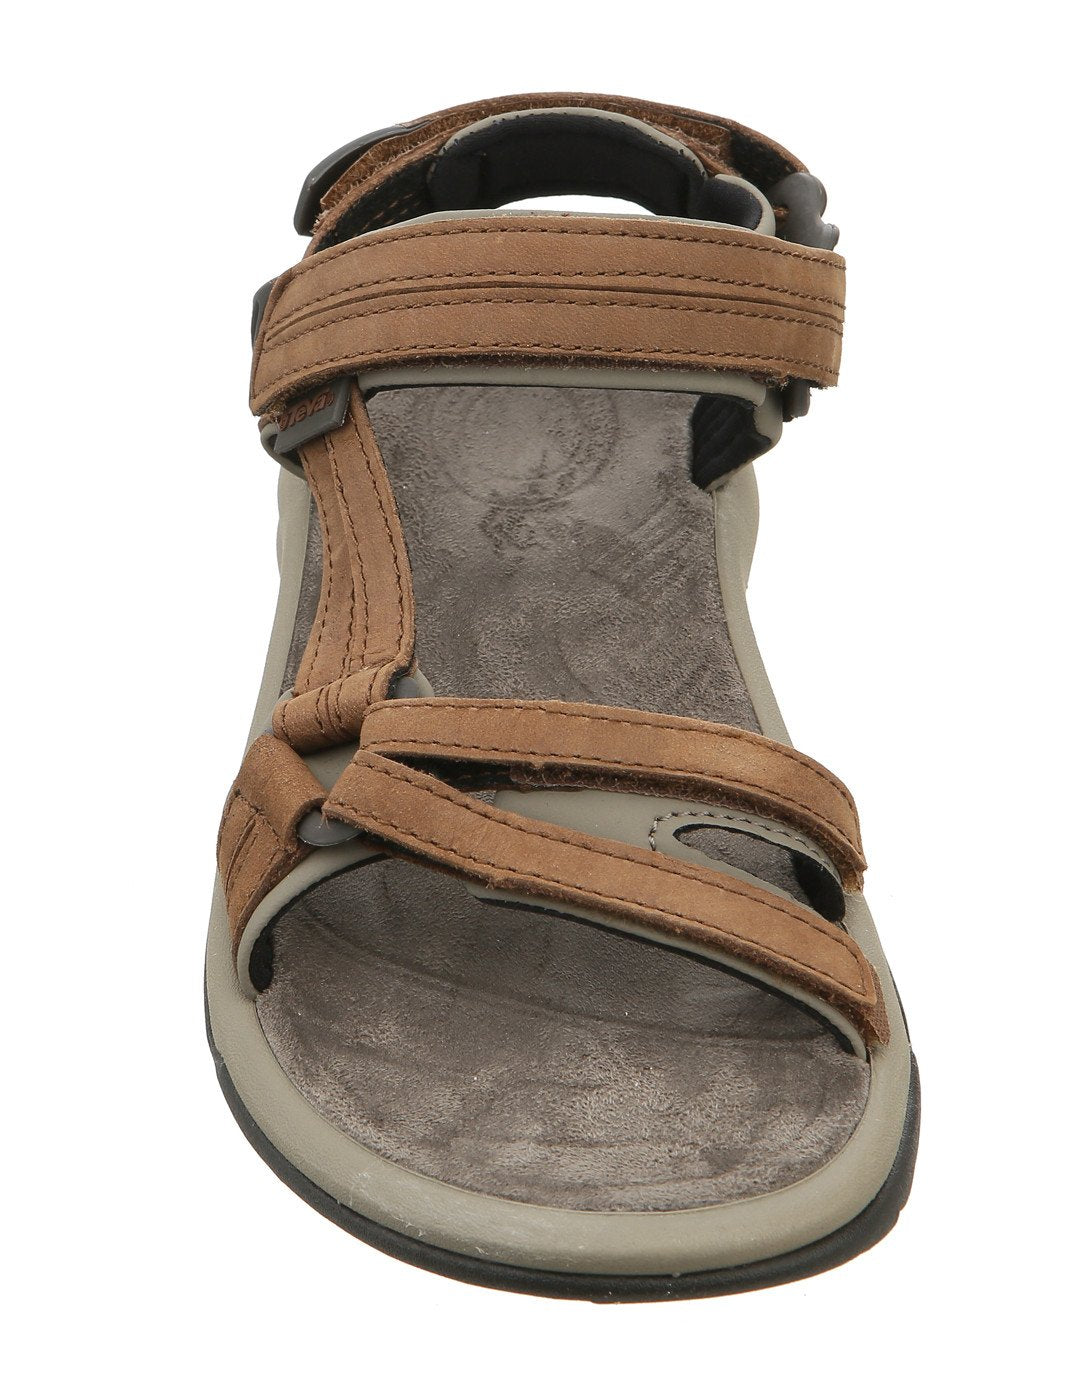 473de142f ... Teva Womens Terra Fi Lite Leather Sandal - Brown ...